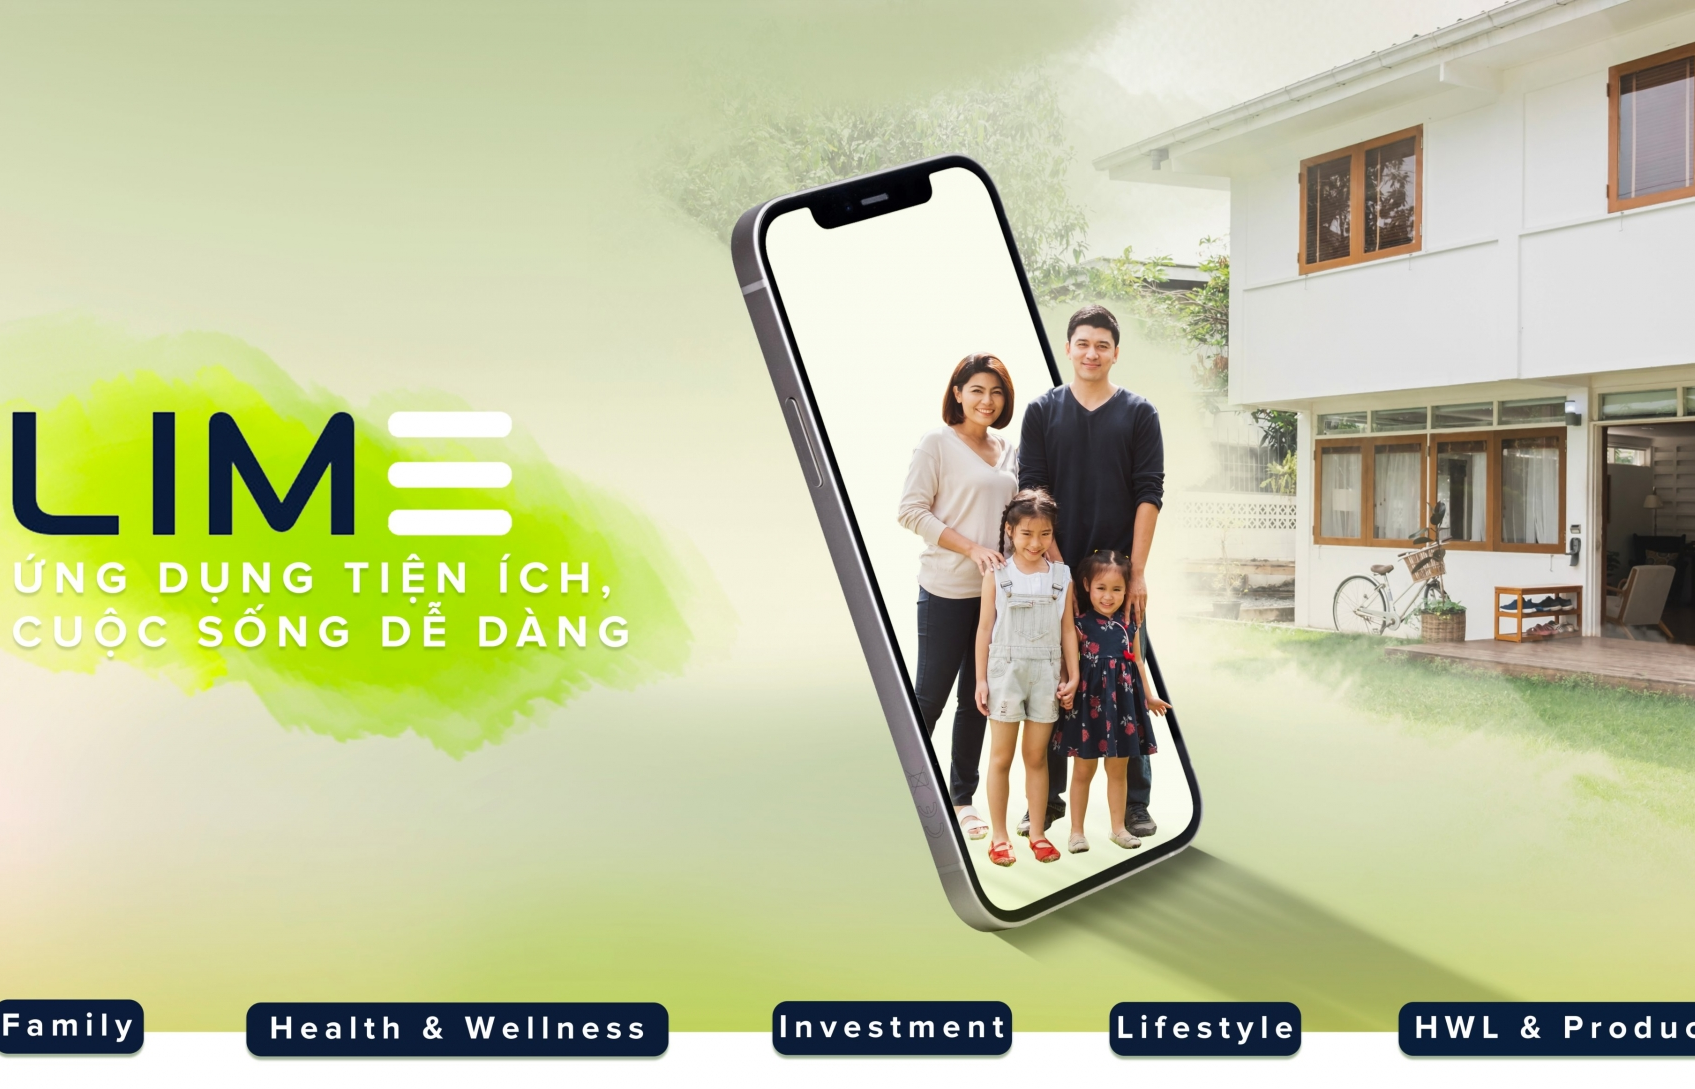 hanwha life vietnam cements its market leadership with lime app